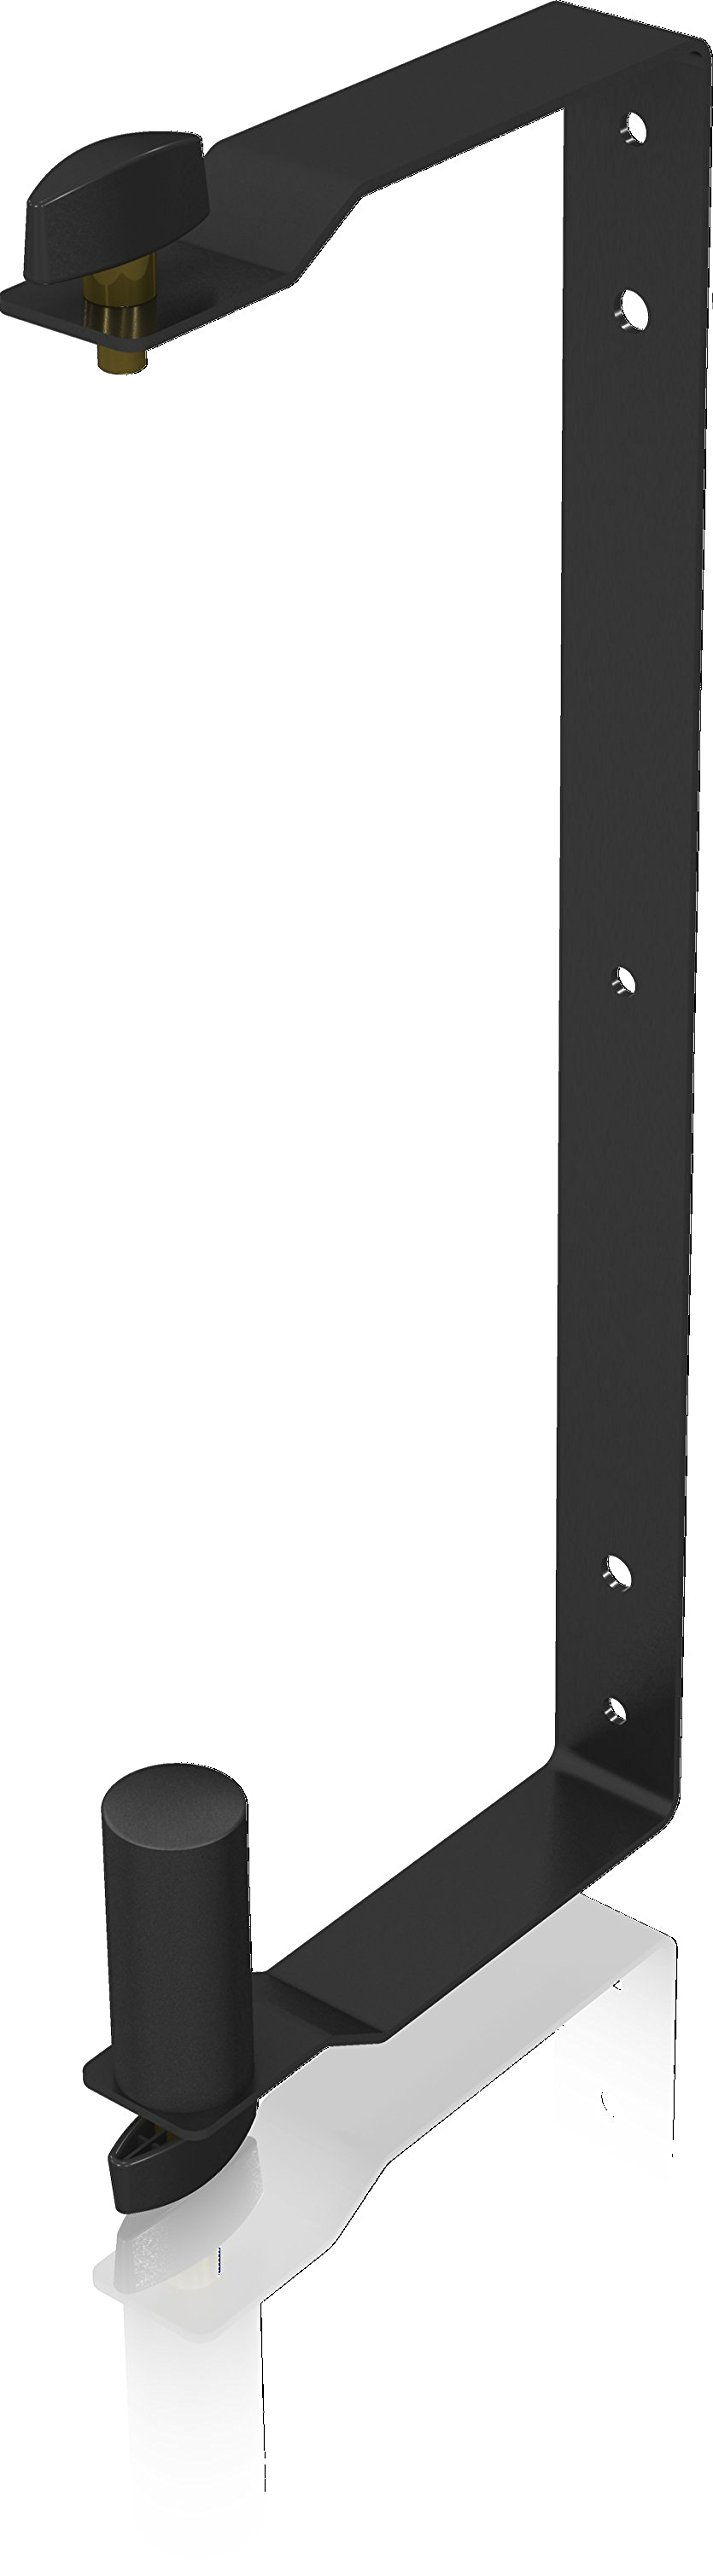 Behringer Eurolive WB210 Wall Mount Bracket for Eurolive B210 Series Speakers, Black by Behringer (Image #1)